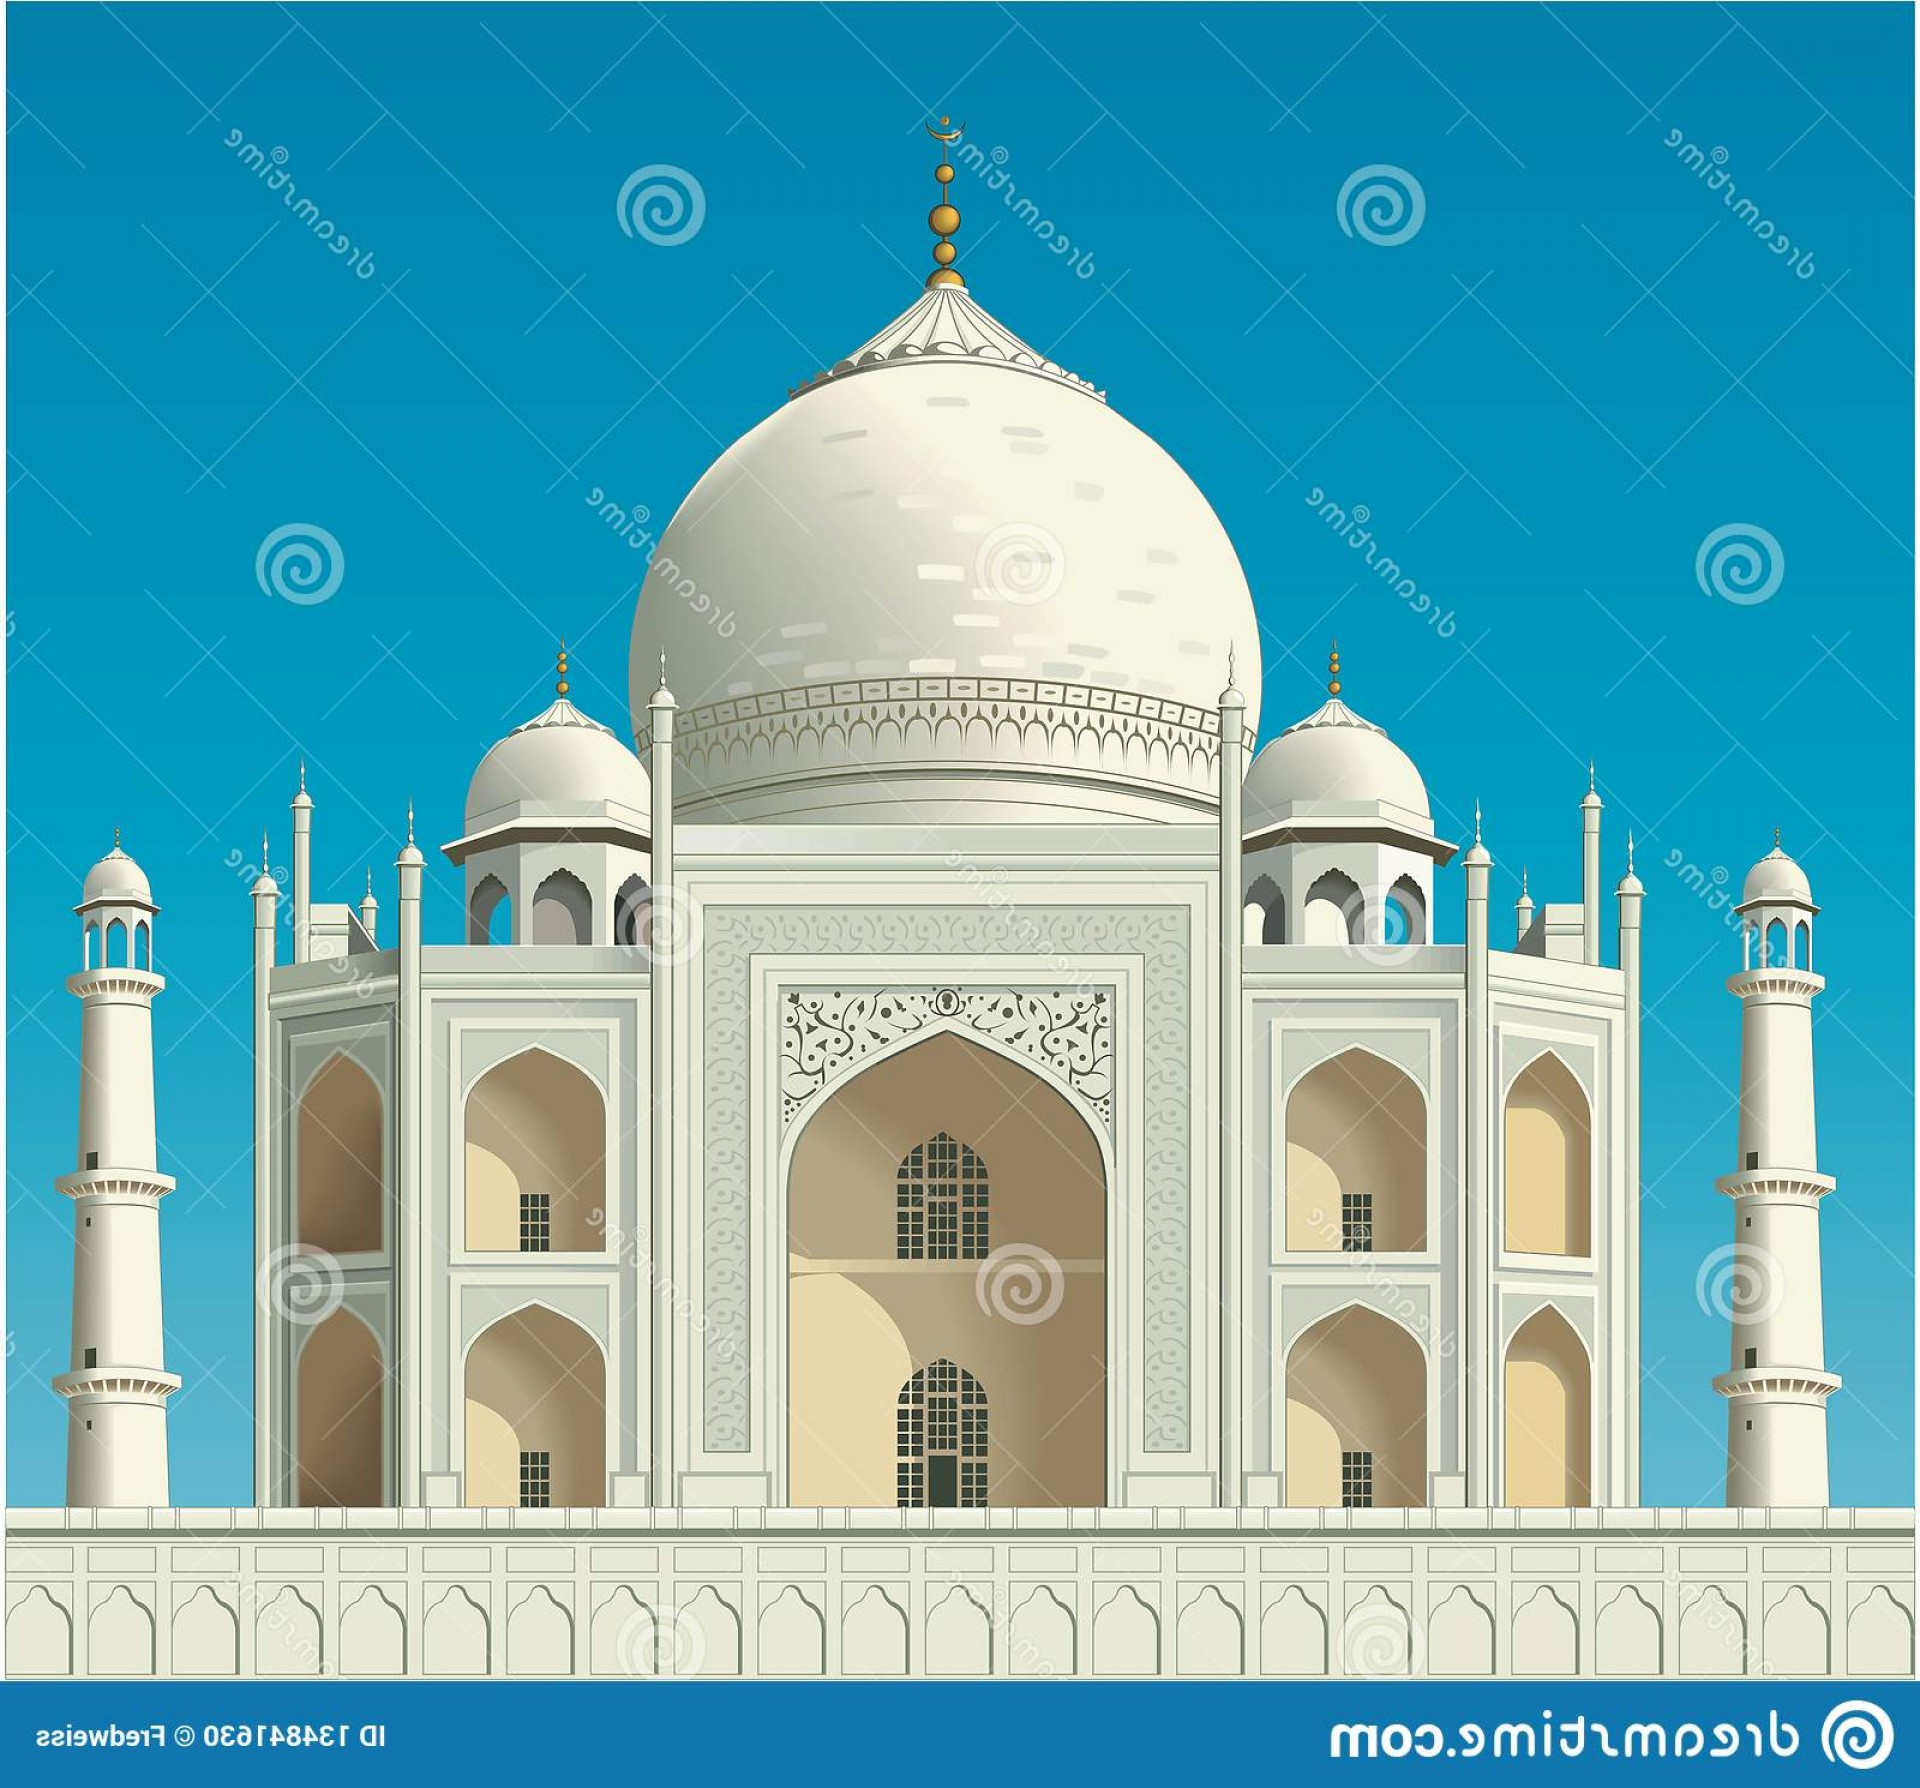 Taj Mahal Vector: Taj Mahal Vector Illustration Vector Illustration Taj Mahal Agra India Image